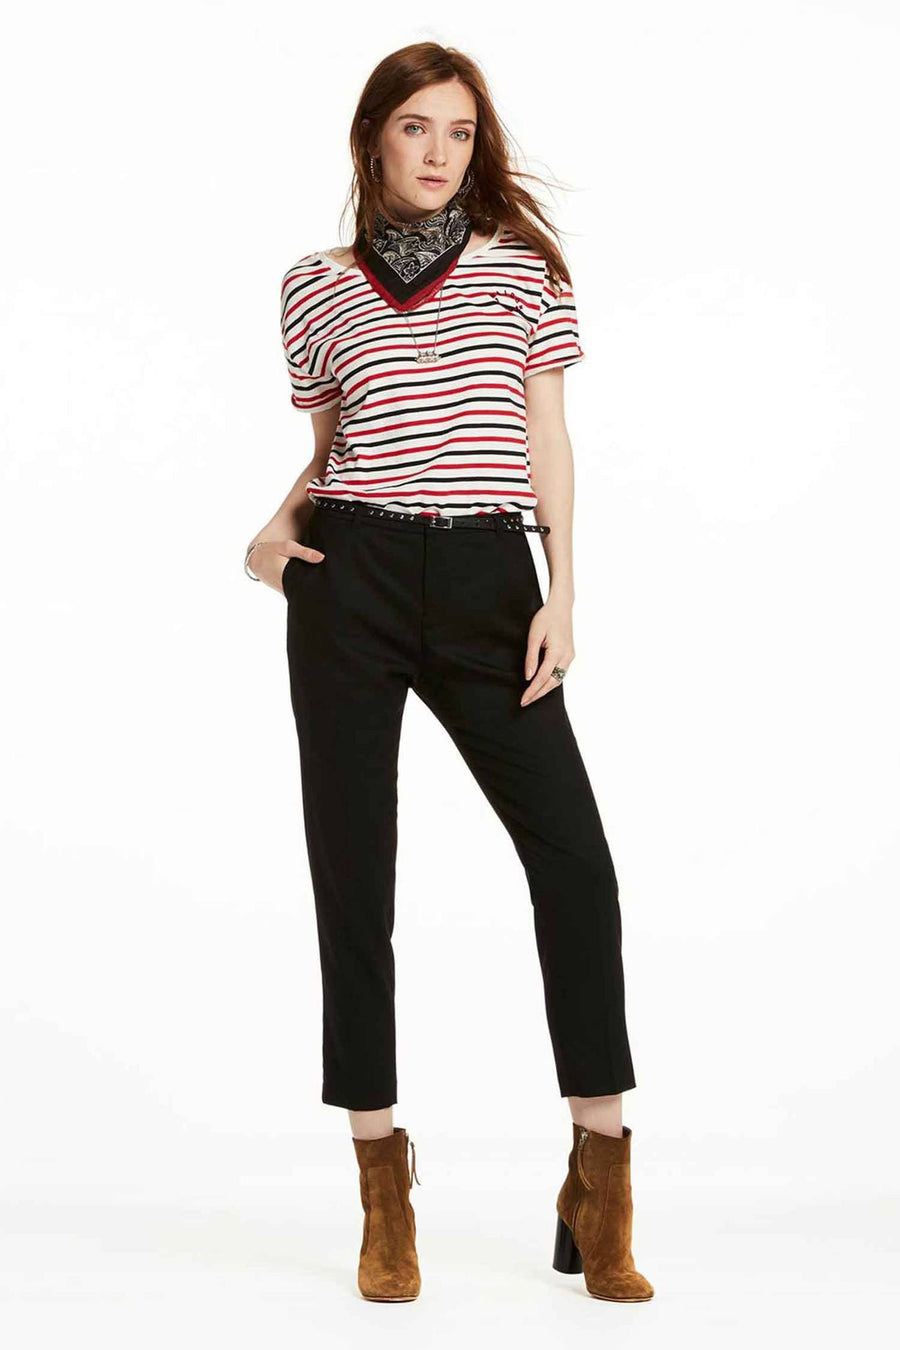 Classic Trousers in Black by Maison Scotch Frockaholics.com